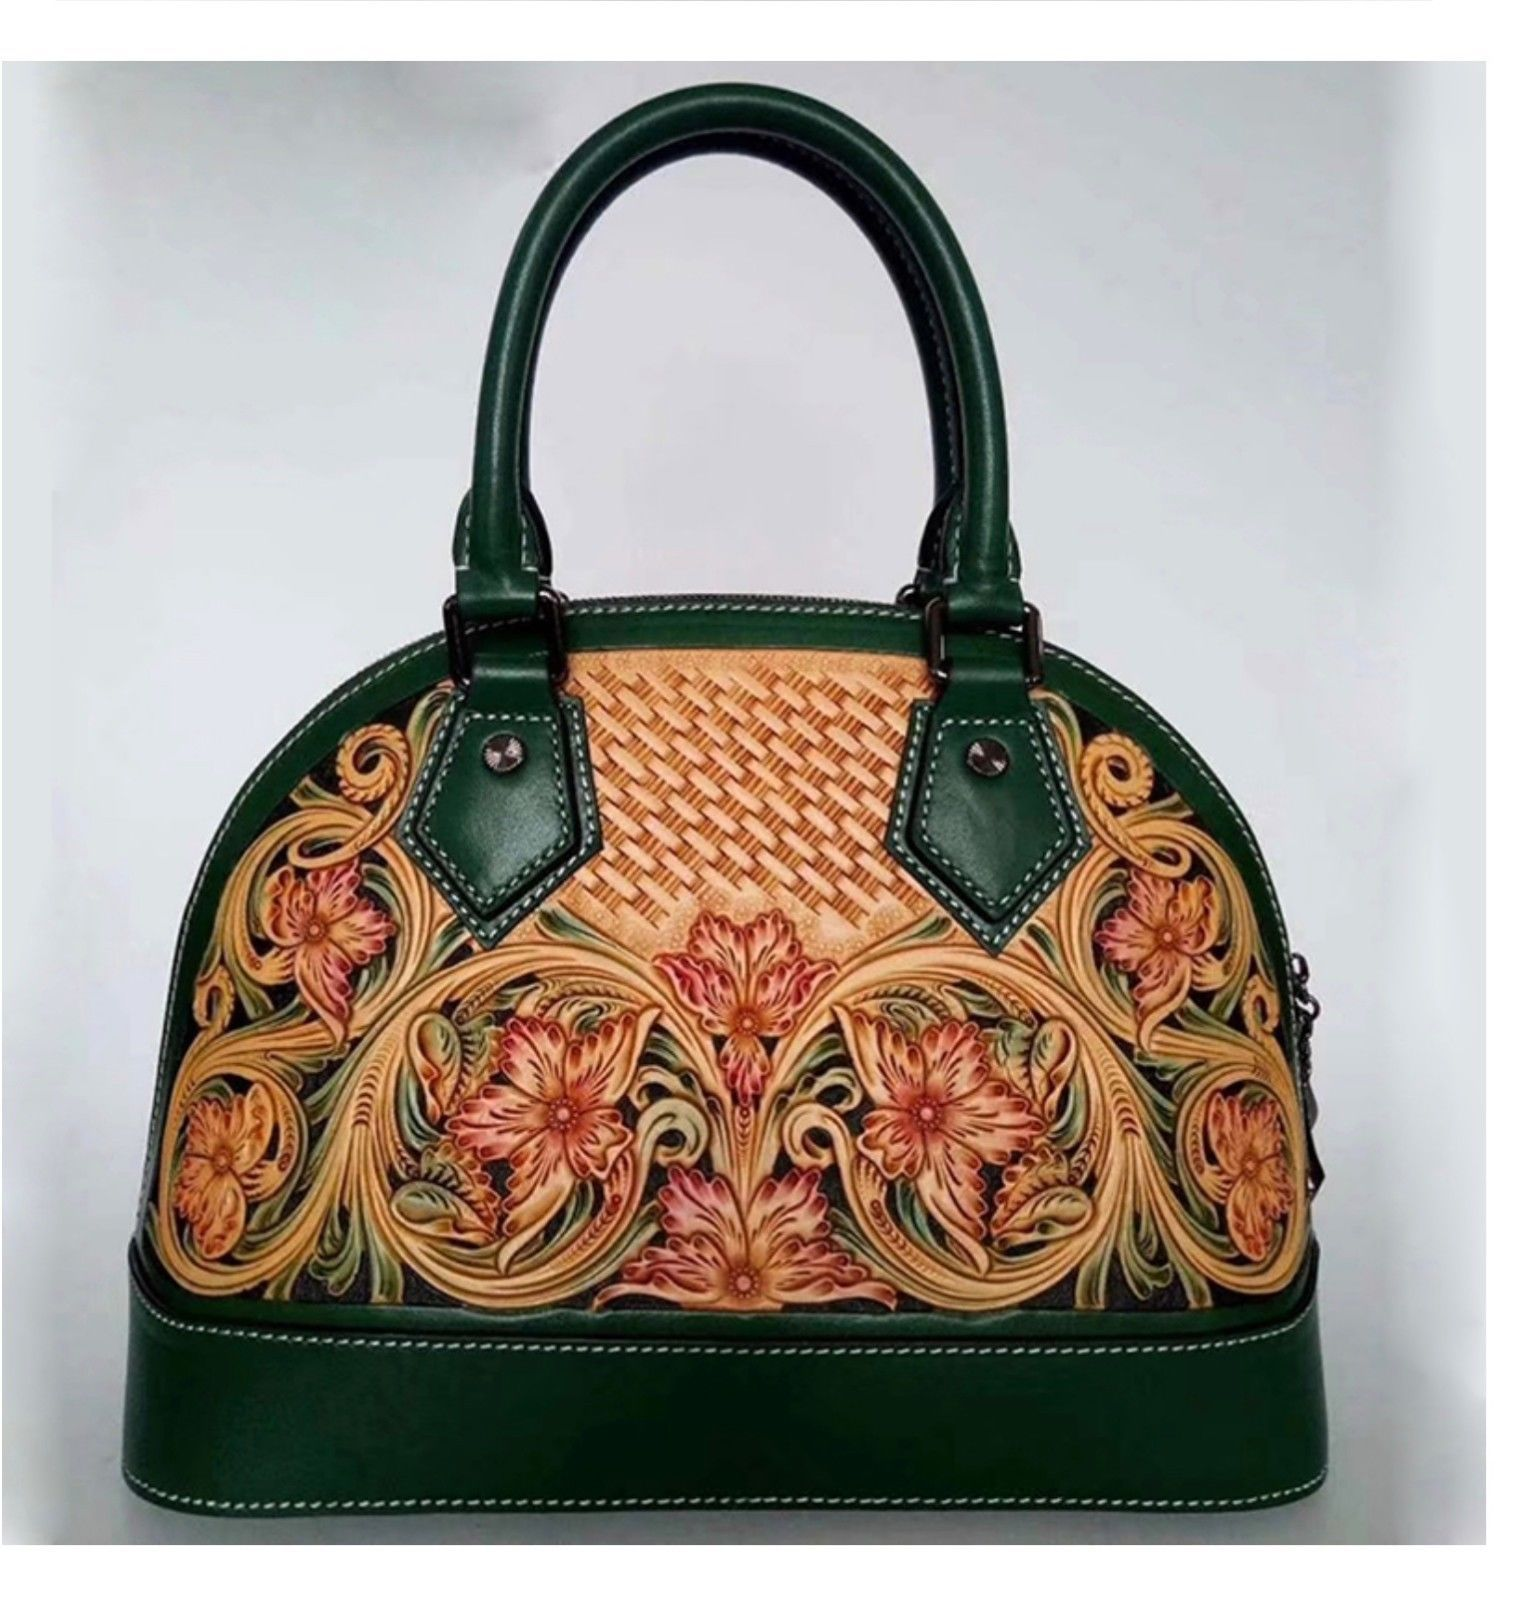 Western Floral Tooled Italian Leather Dome Satchel Handbag Purse Shoulder Bag